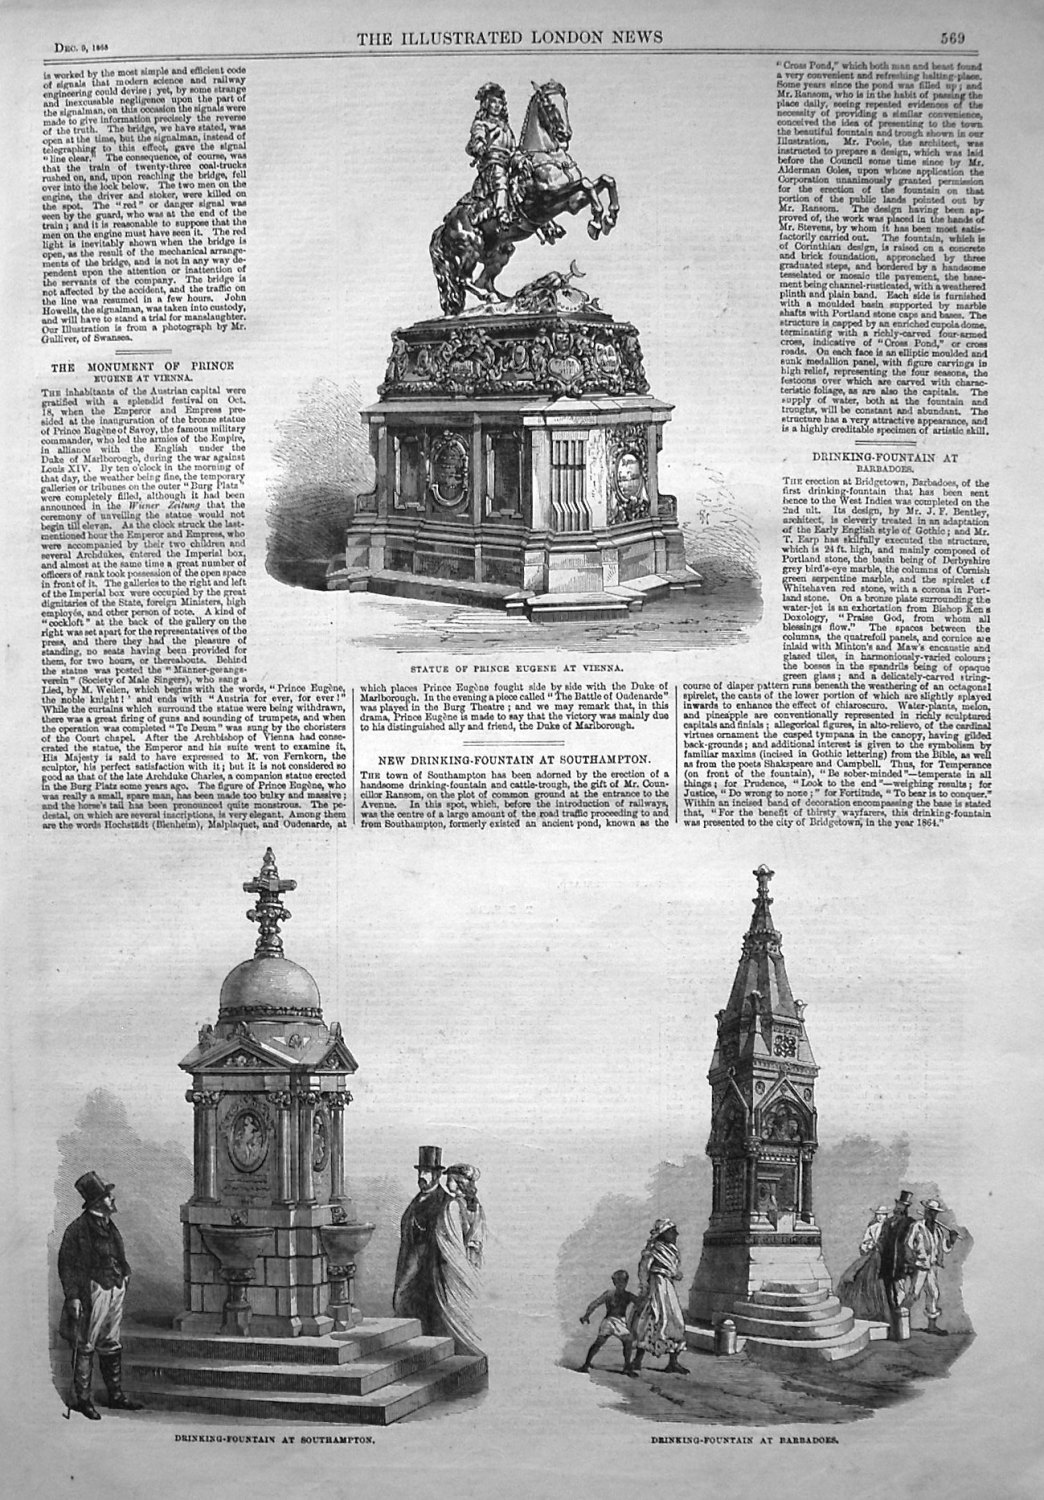 New Drinking-Fountain at Southampton. 1865